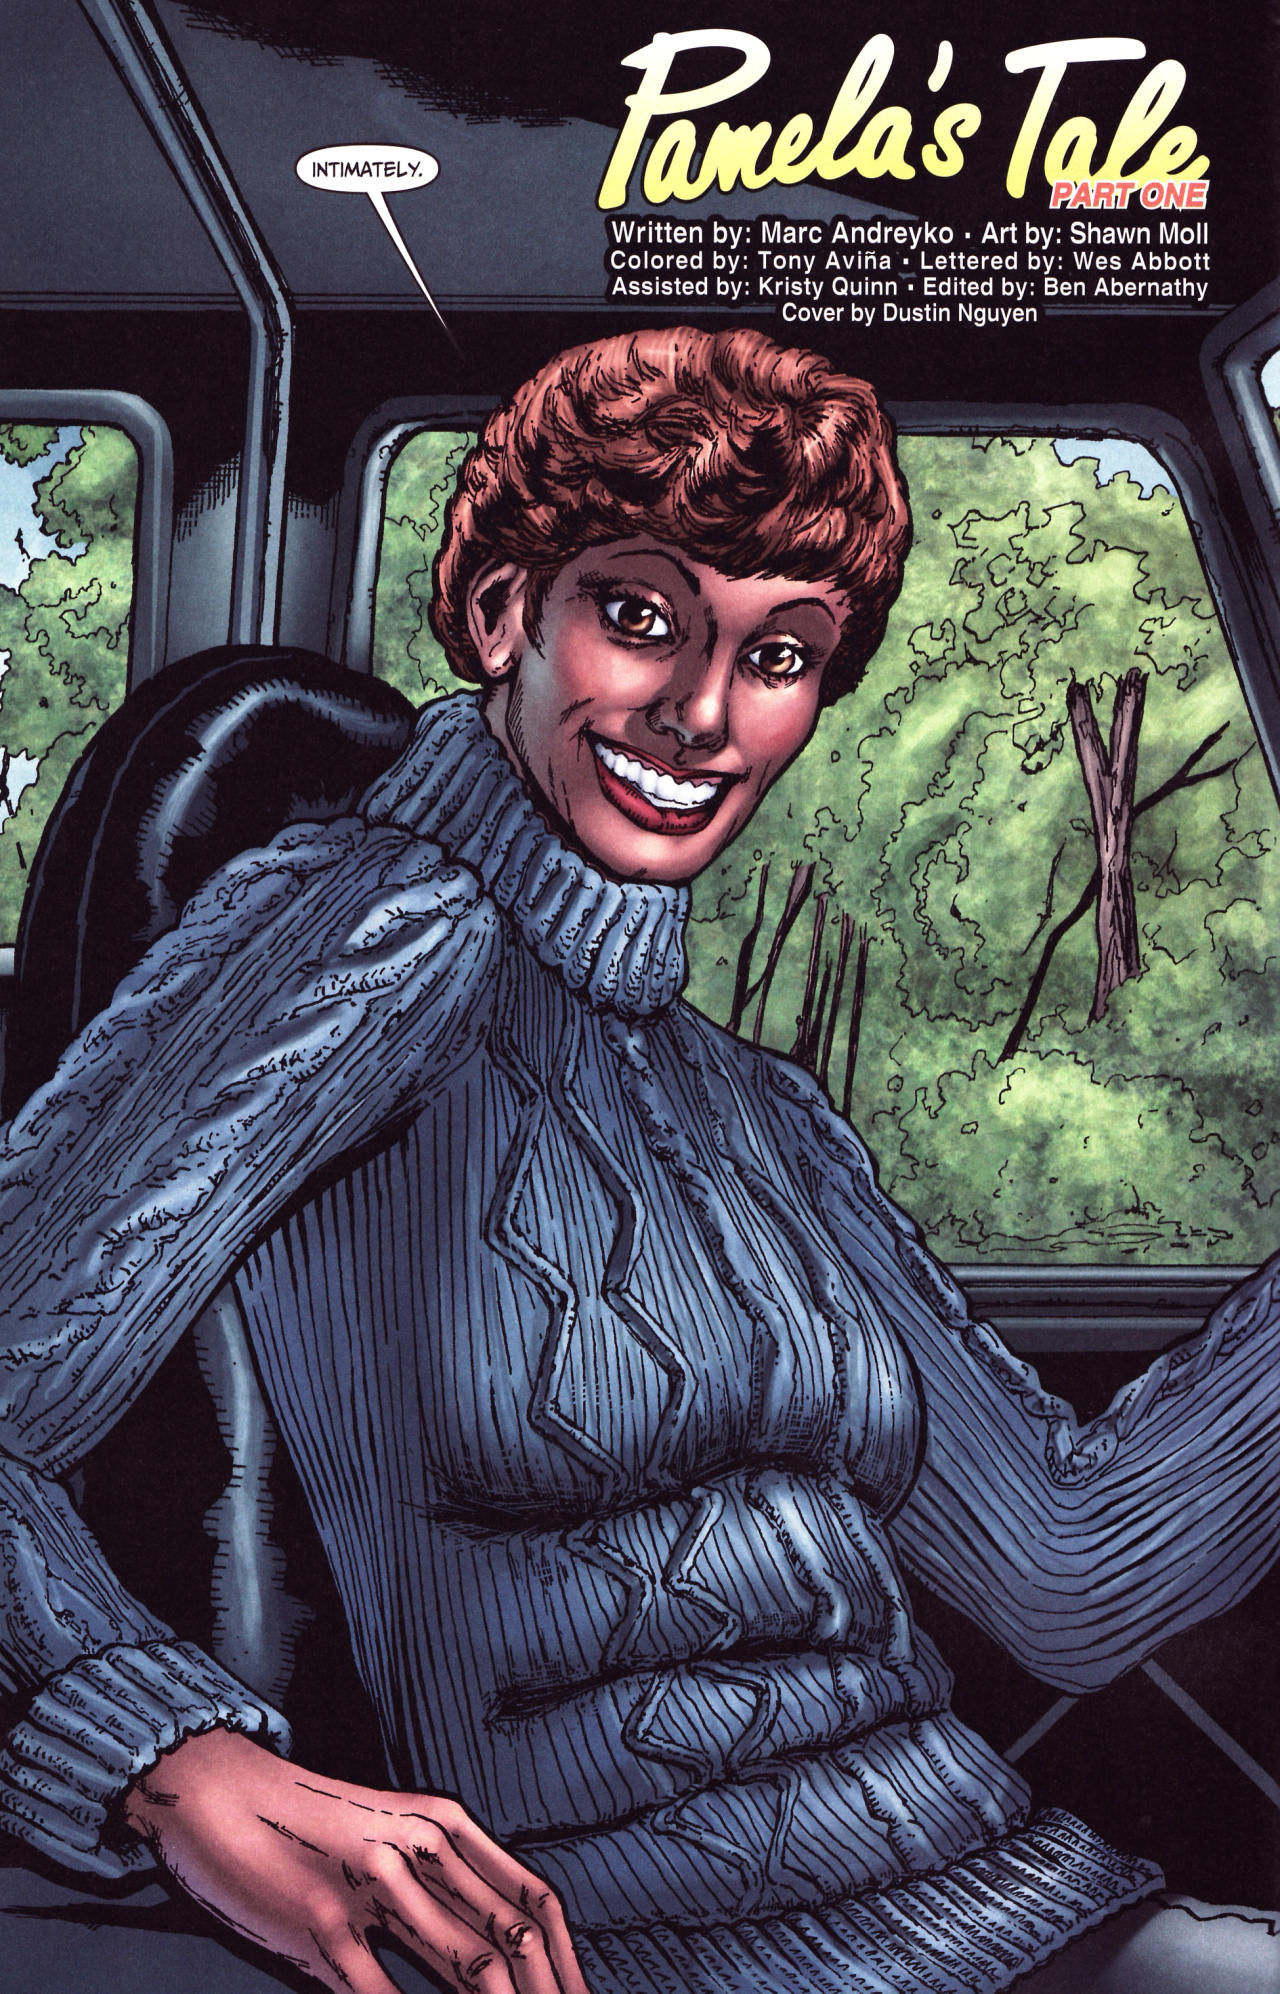 Read online Friday the 13th: Pamela's Tale comic -  Issue #1 - 6